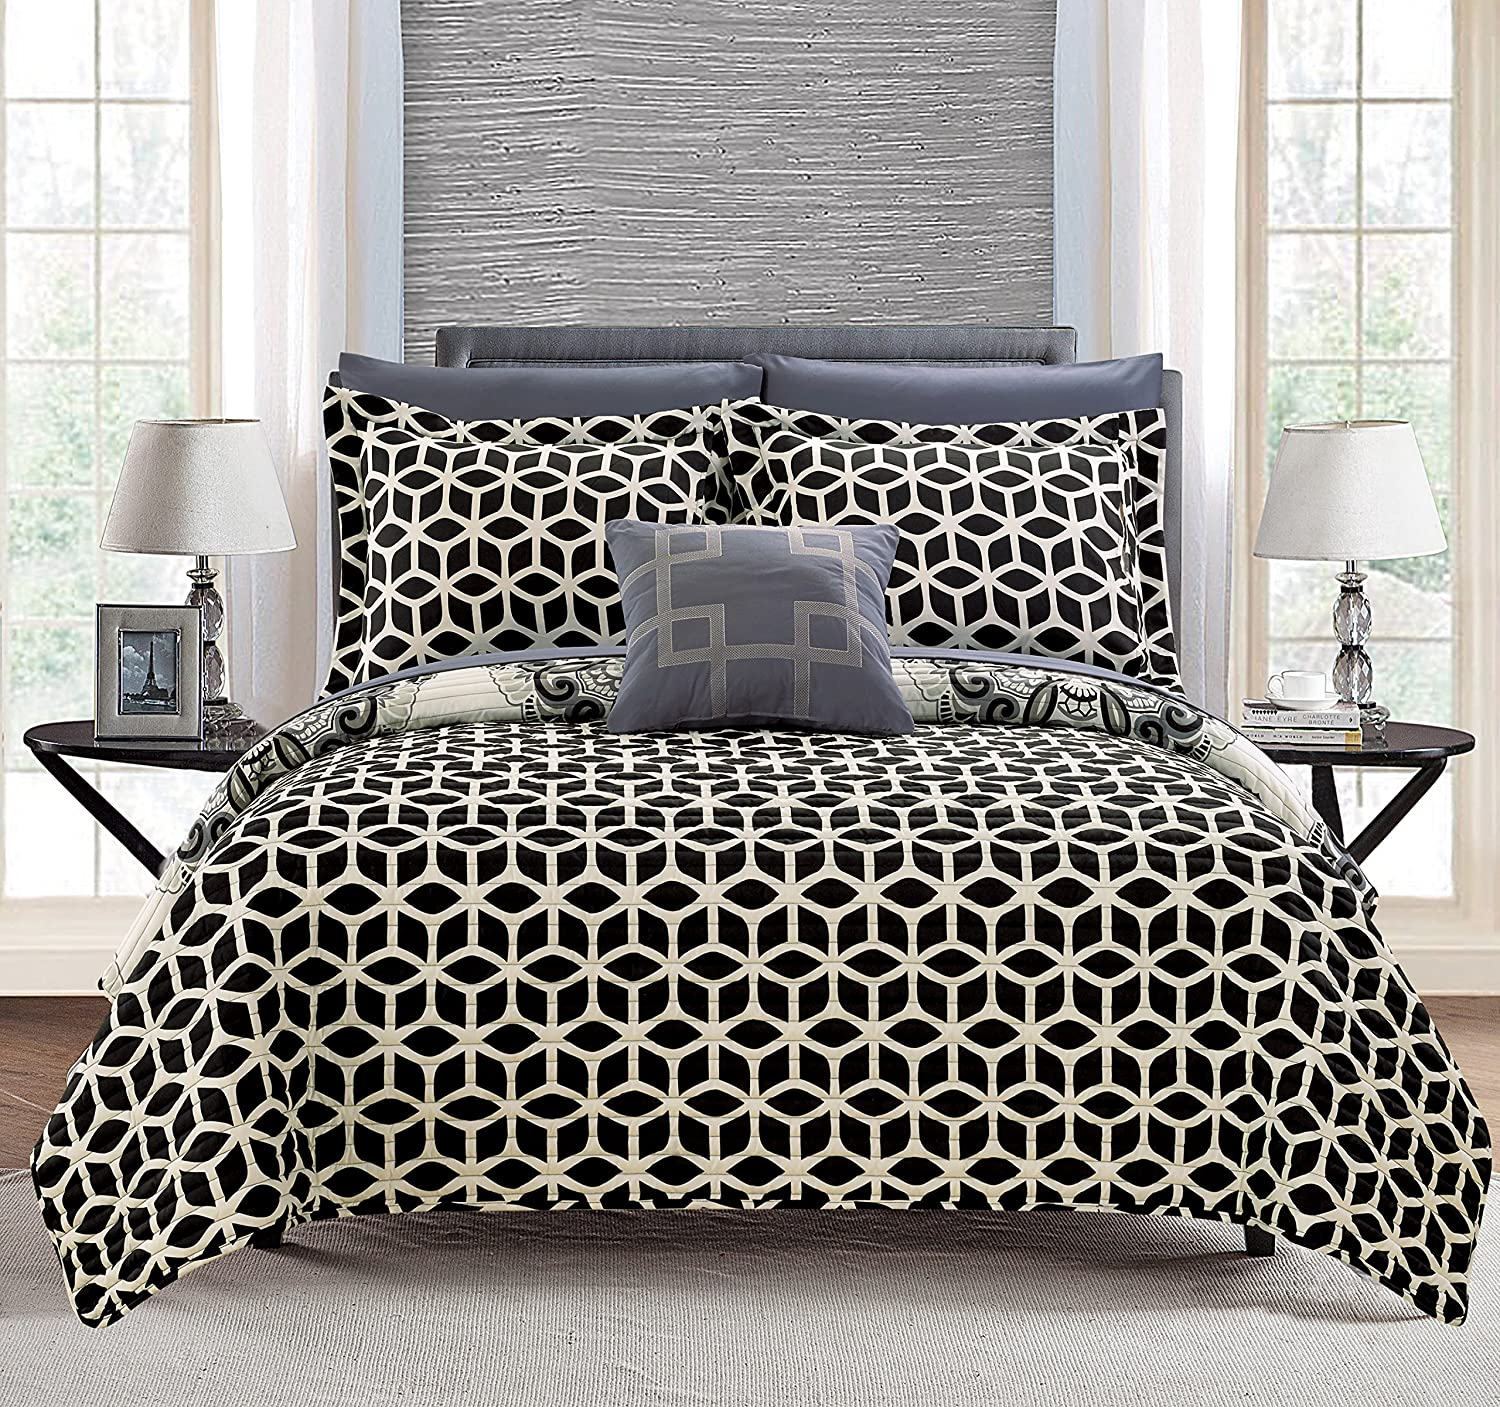 Chic Home Madrid 4 Piece Reversible Quilt Set Super Soft Microfiber Large Printed Medallion Design with Geometric Patterned Backing Bedding Set